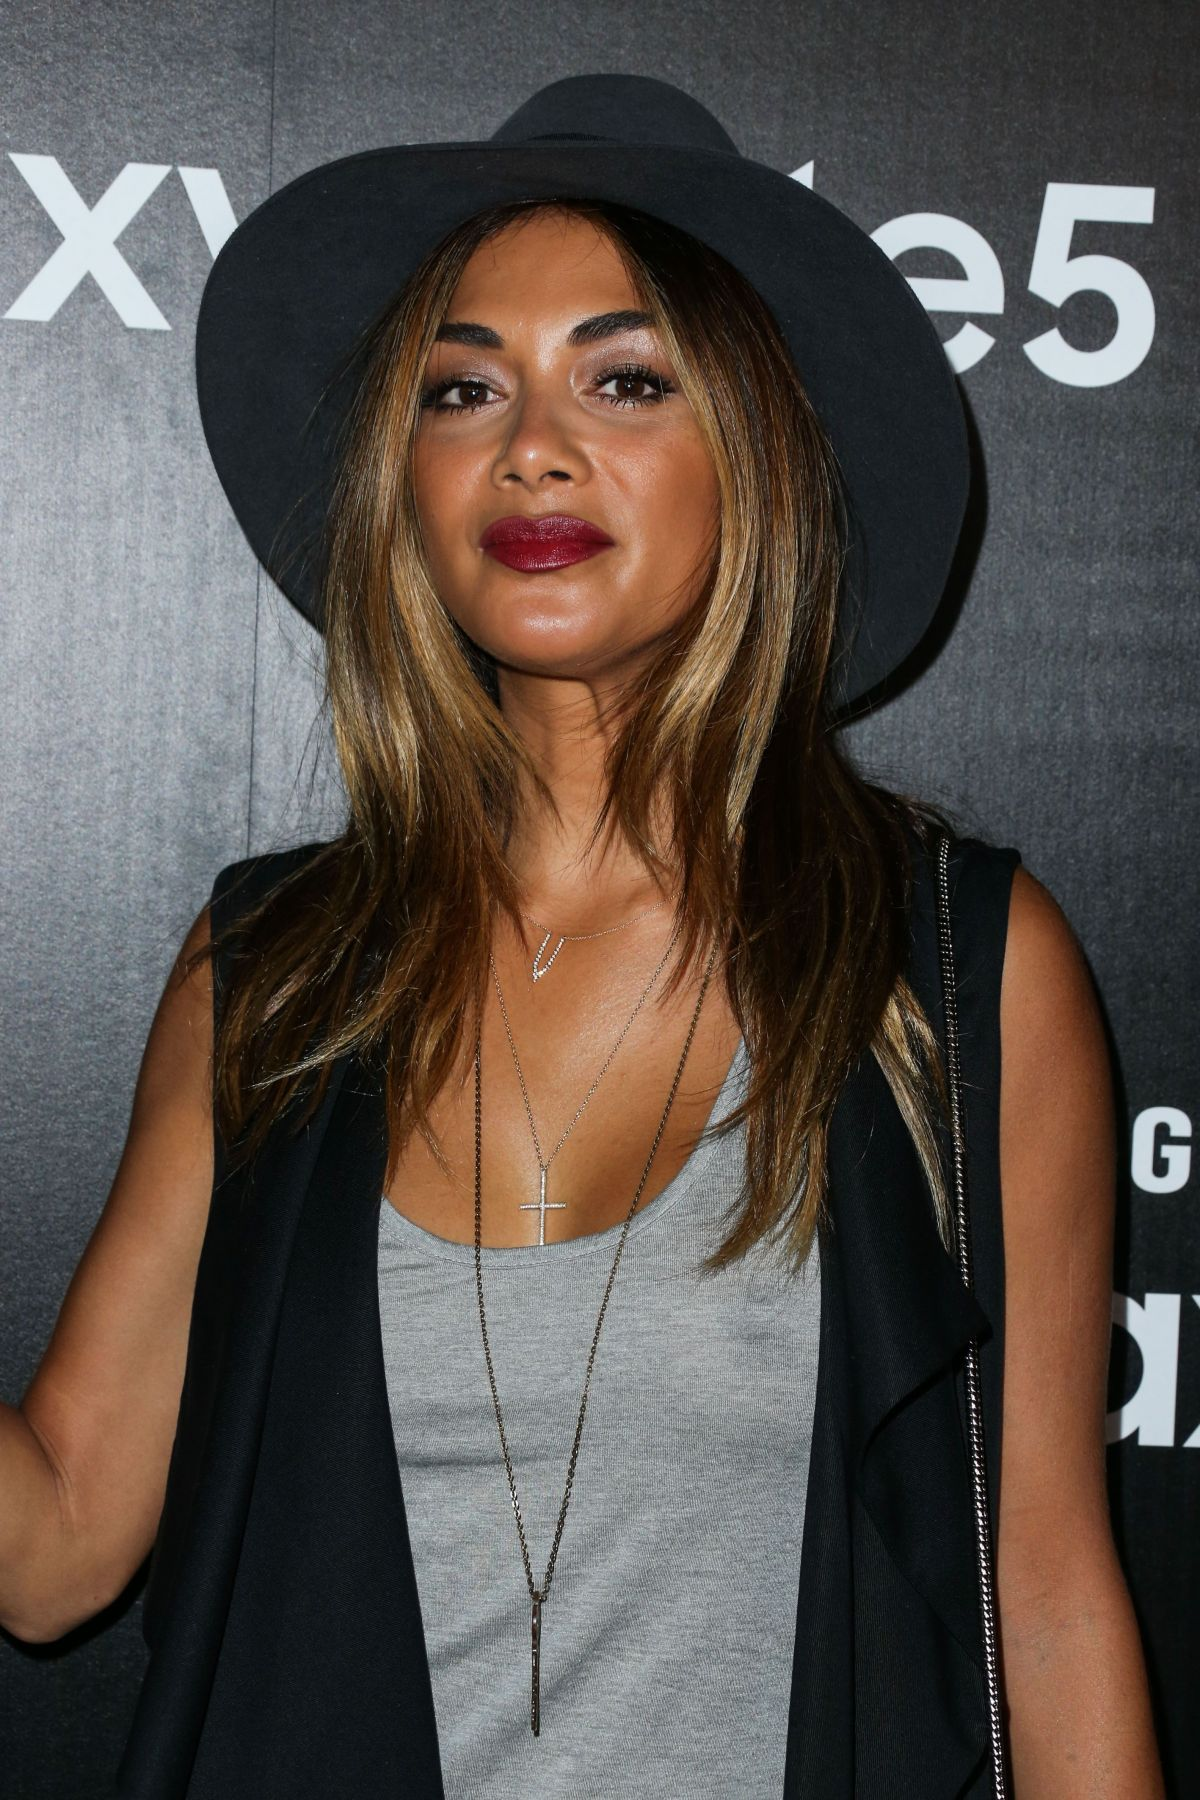 NICOLE SCHERZINGER at Samsung Galaxy S6 Edge+ and Note 5 Launch in ... Nicole Scherzinger